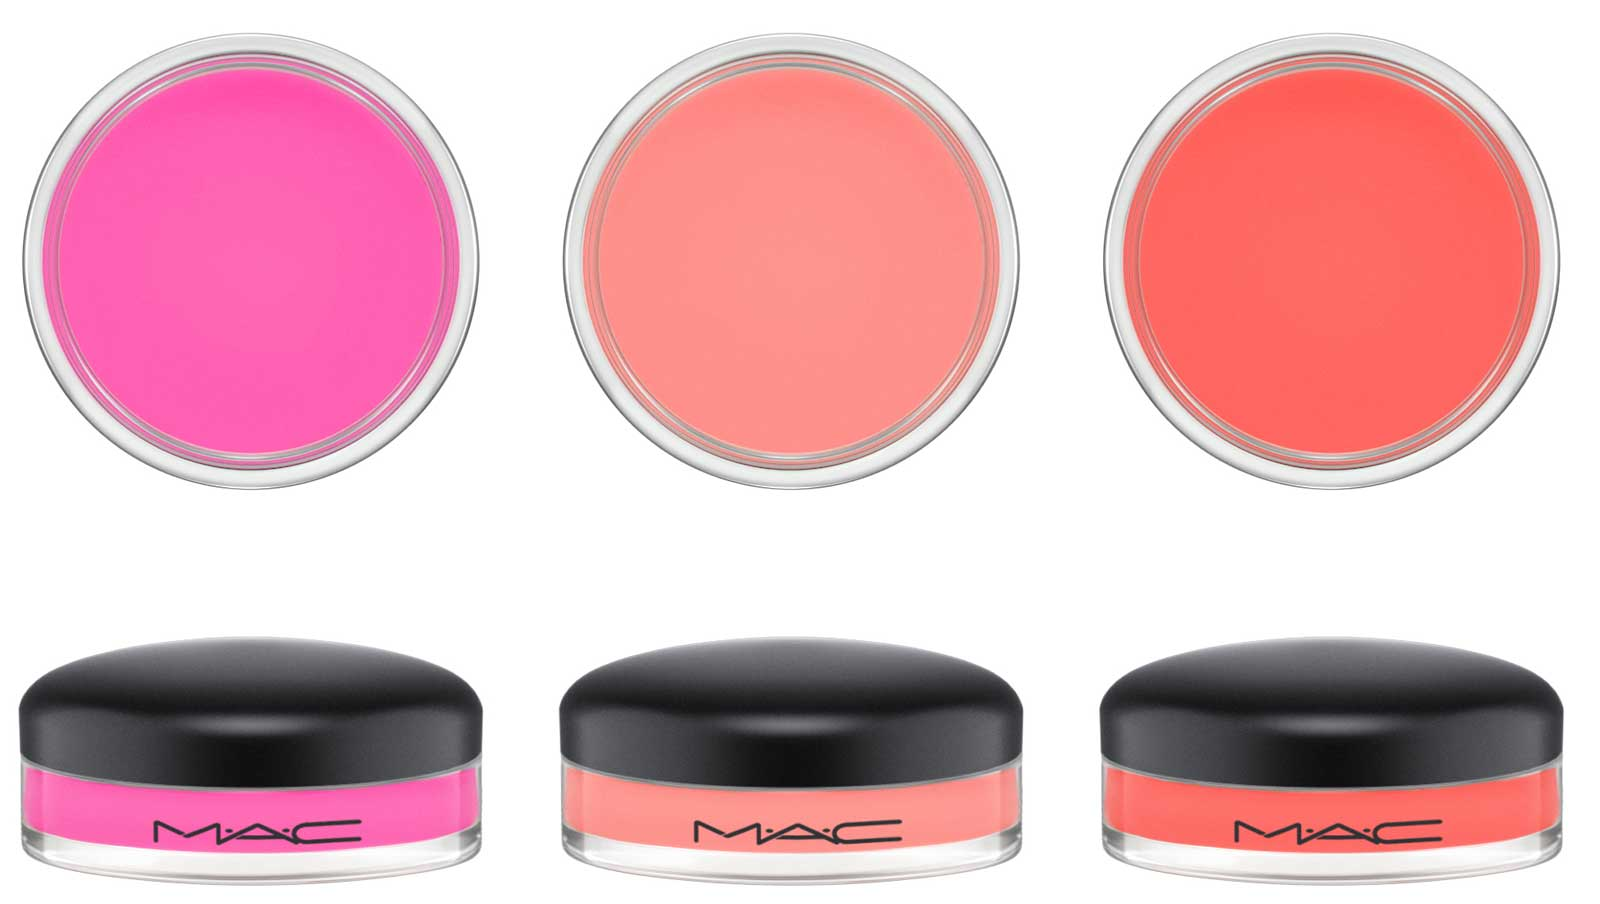 1-mac-crystal-glaze-gloss